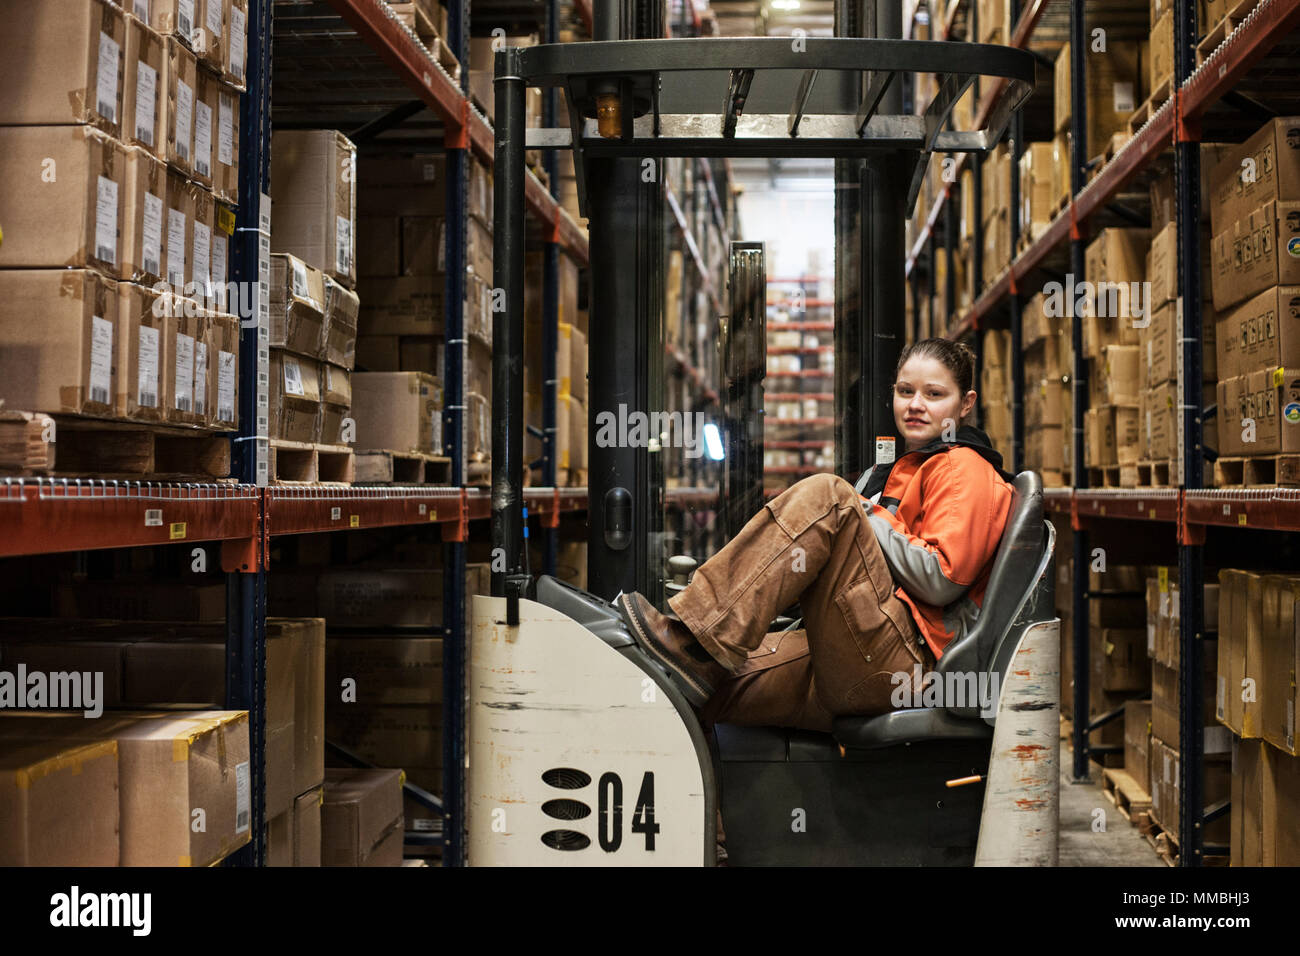 Caucasian female warehouse worker sitting in a motorized stock picker surrounded by products stored in cardboard boxes in a large warehouse distributi - Stock Image